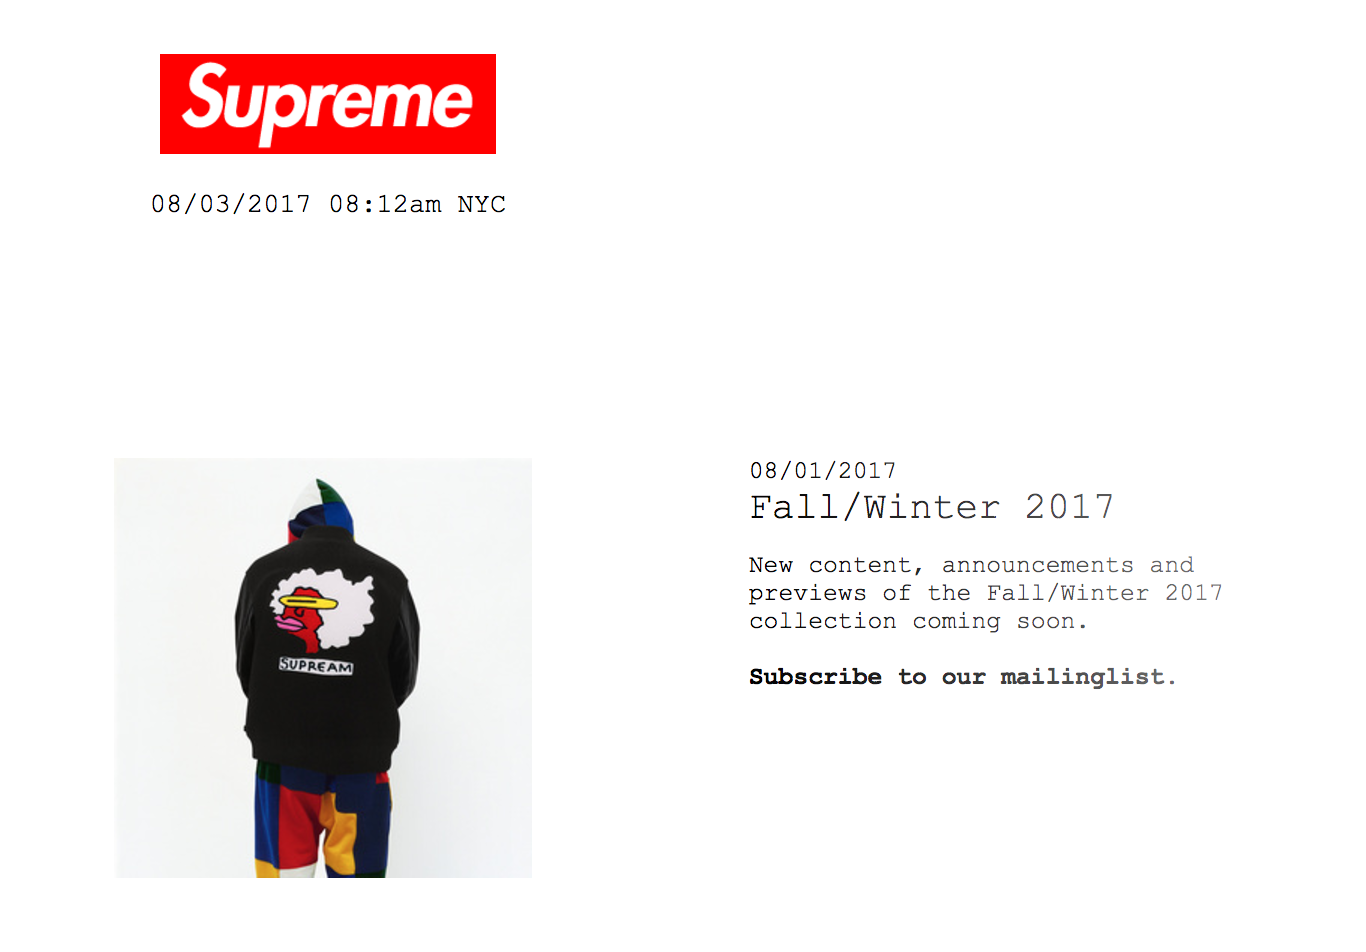 Screenshot of a product on Supreme